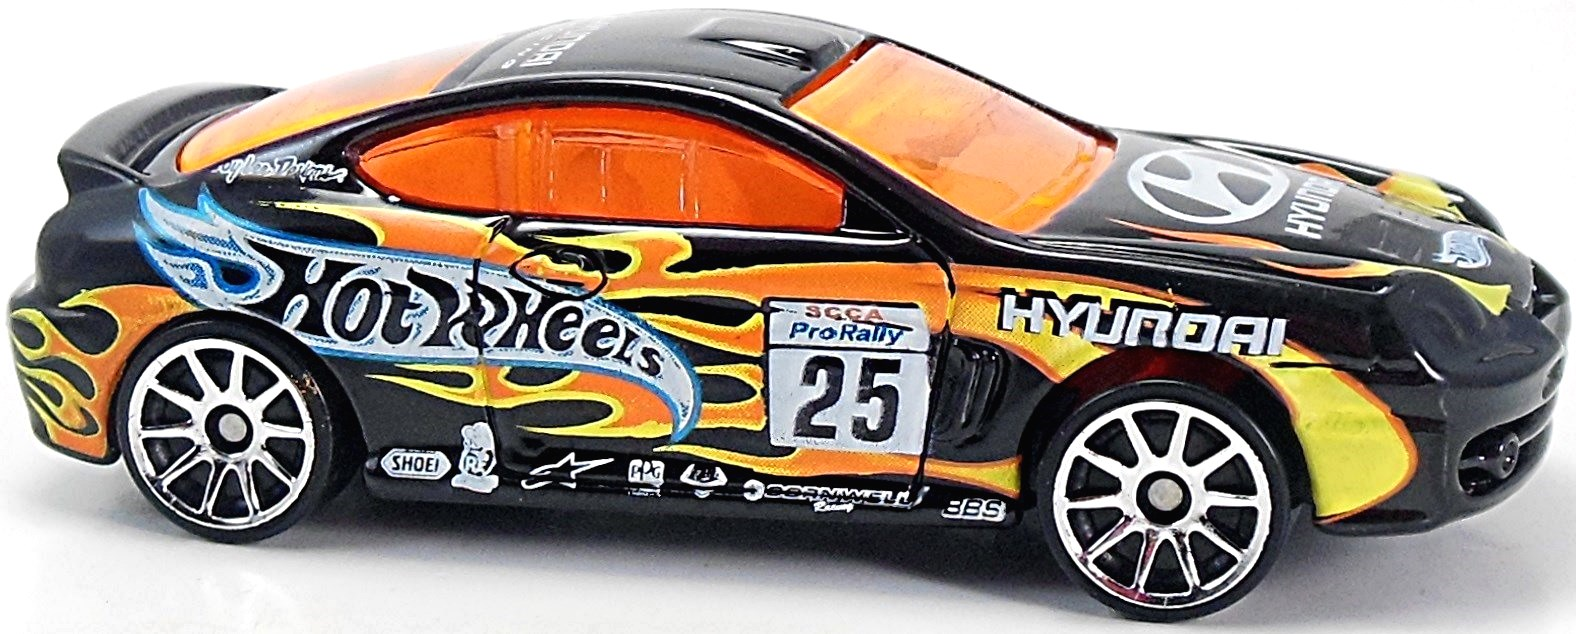 Hyundai Tiburon 70mm 2003 Hot Wheels Newsletter